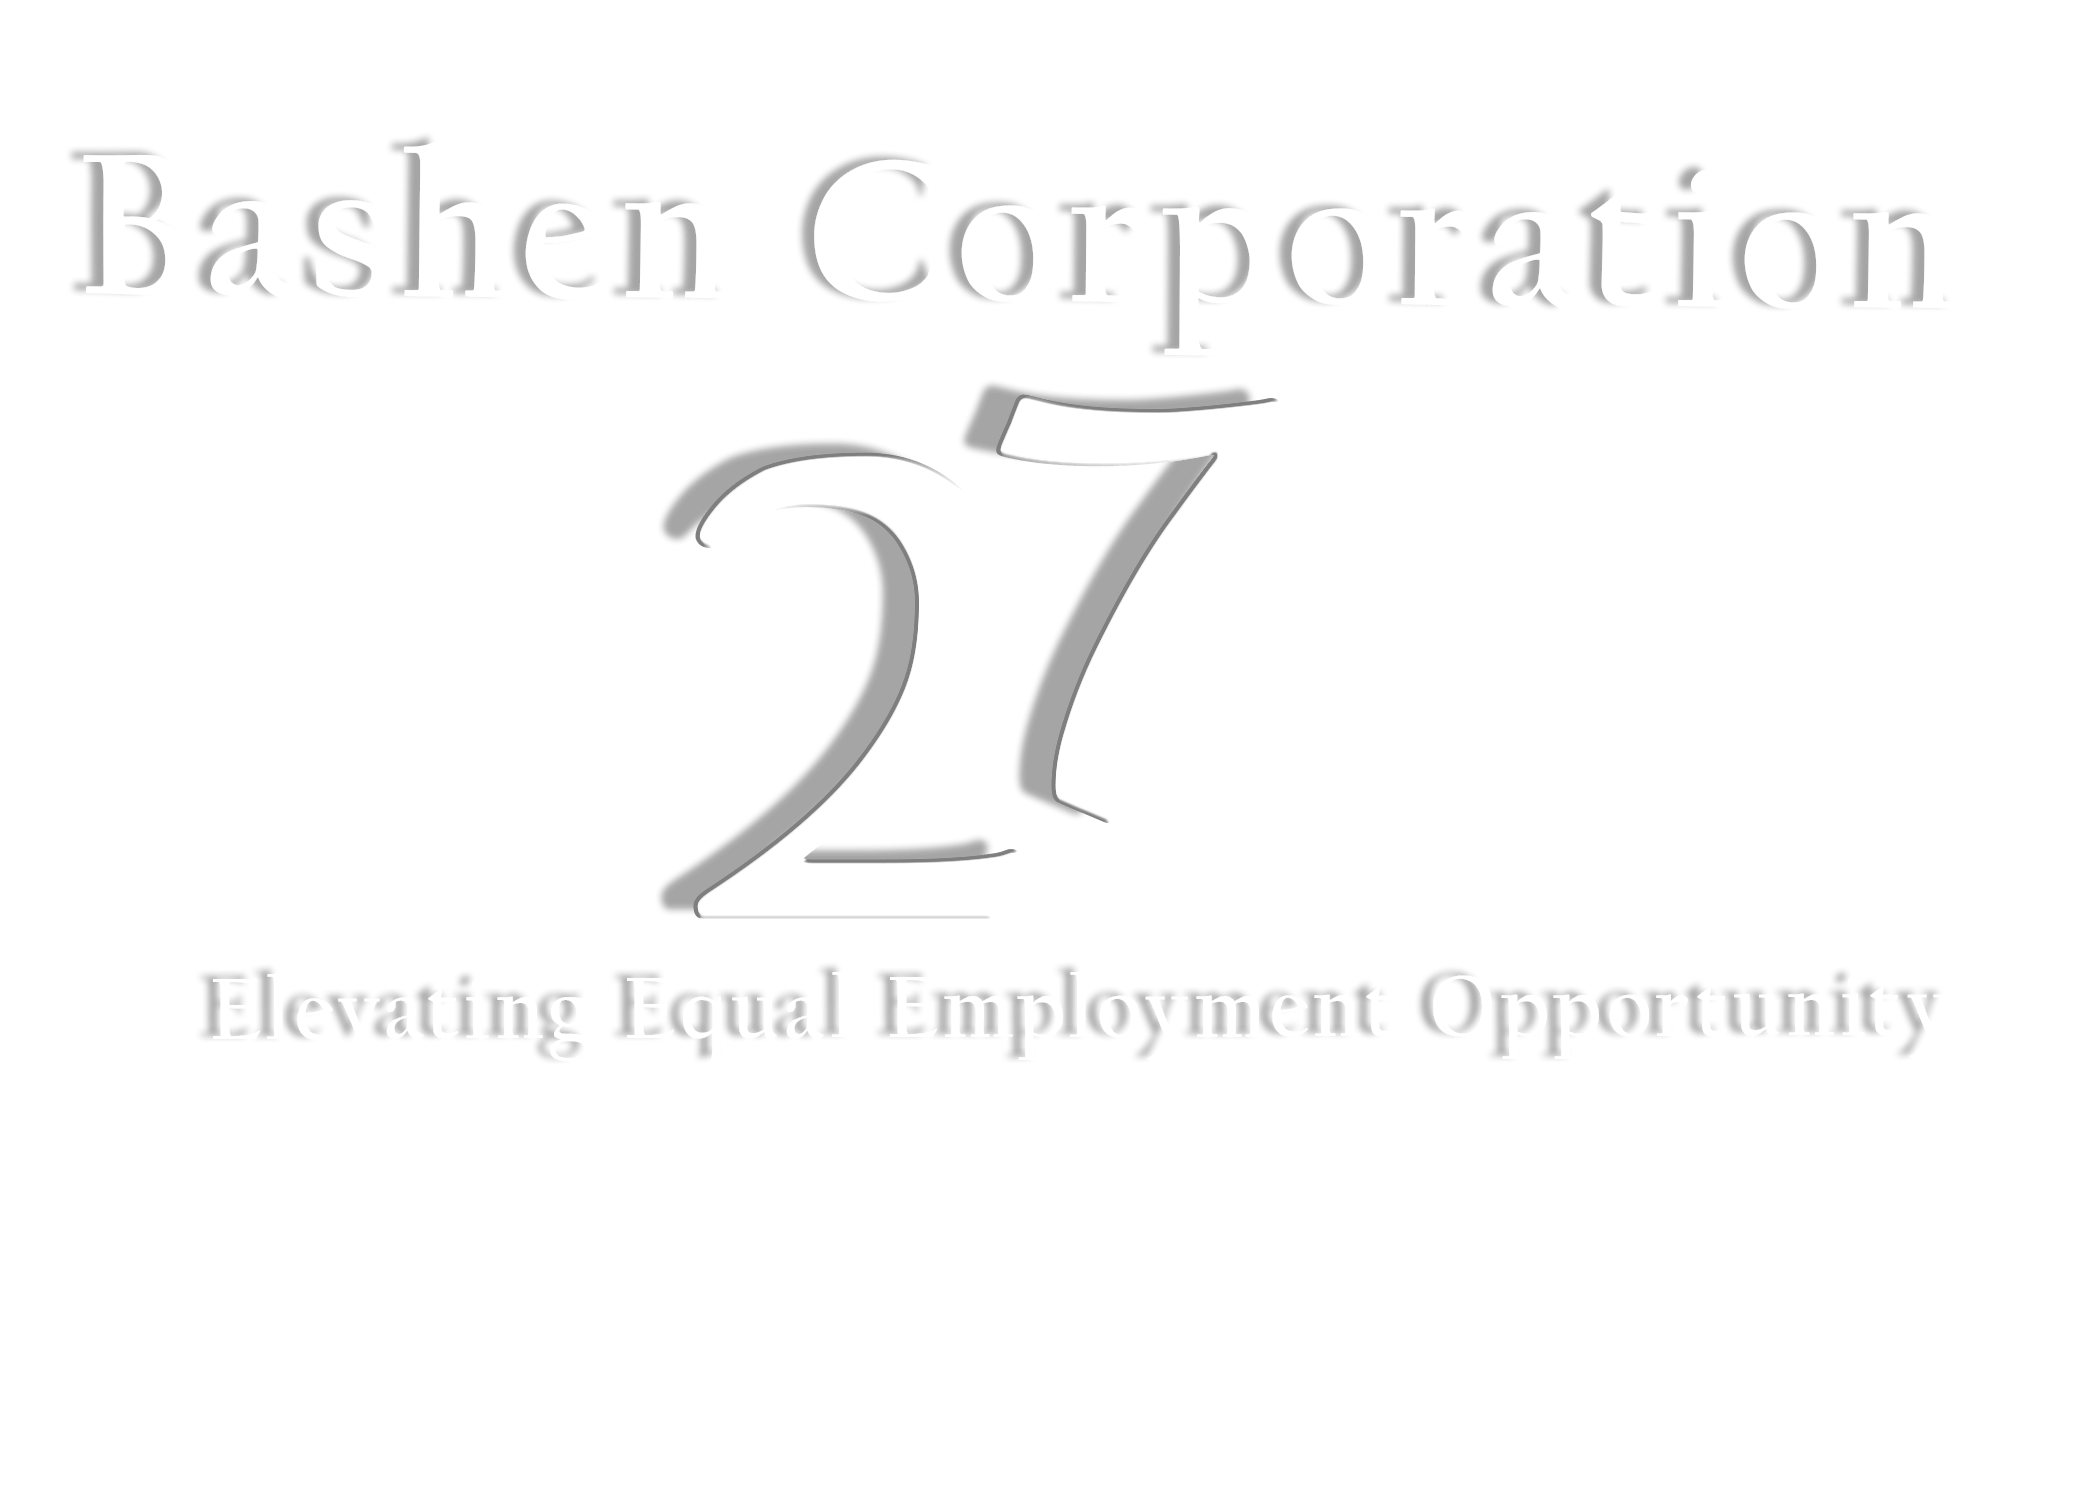 Bashen Corporation - Elevating Equal Employment Opportunity